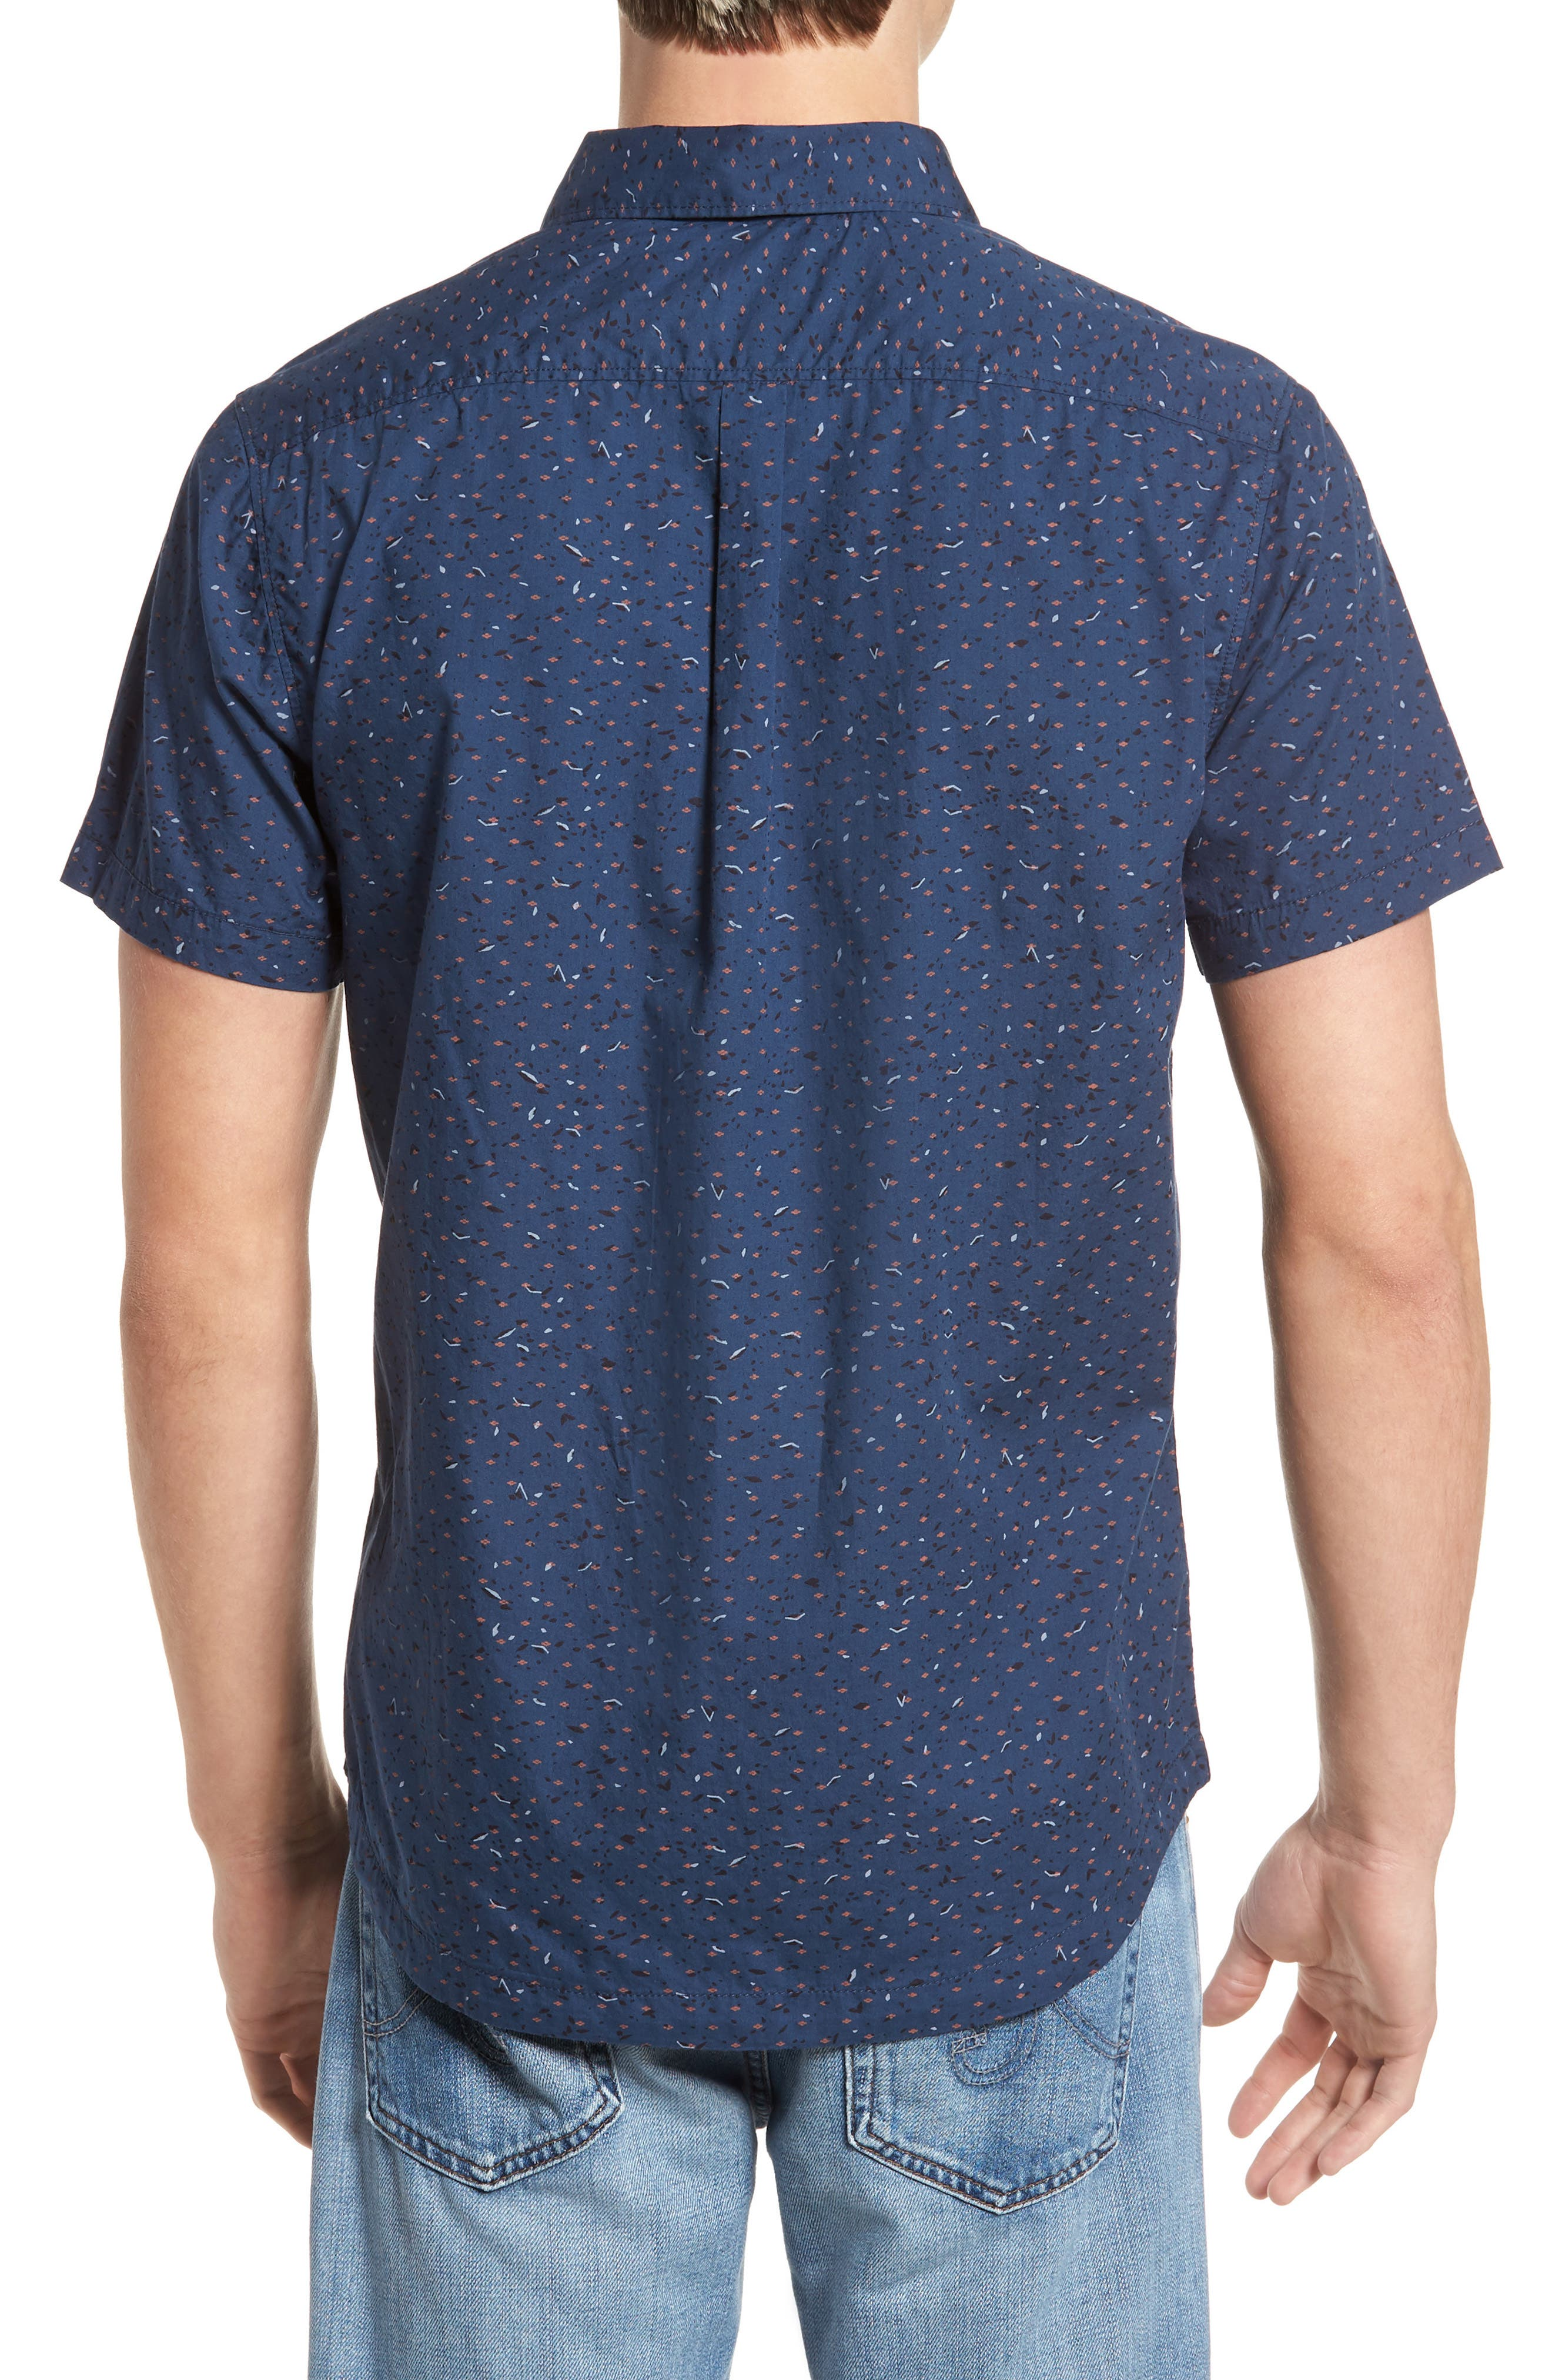 Jaded Woven Shirt,                             Alternate thumbnail 2, color,                             487